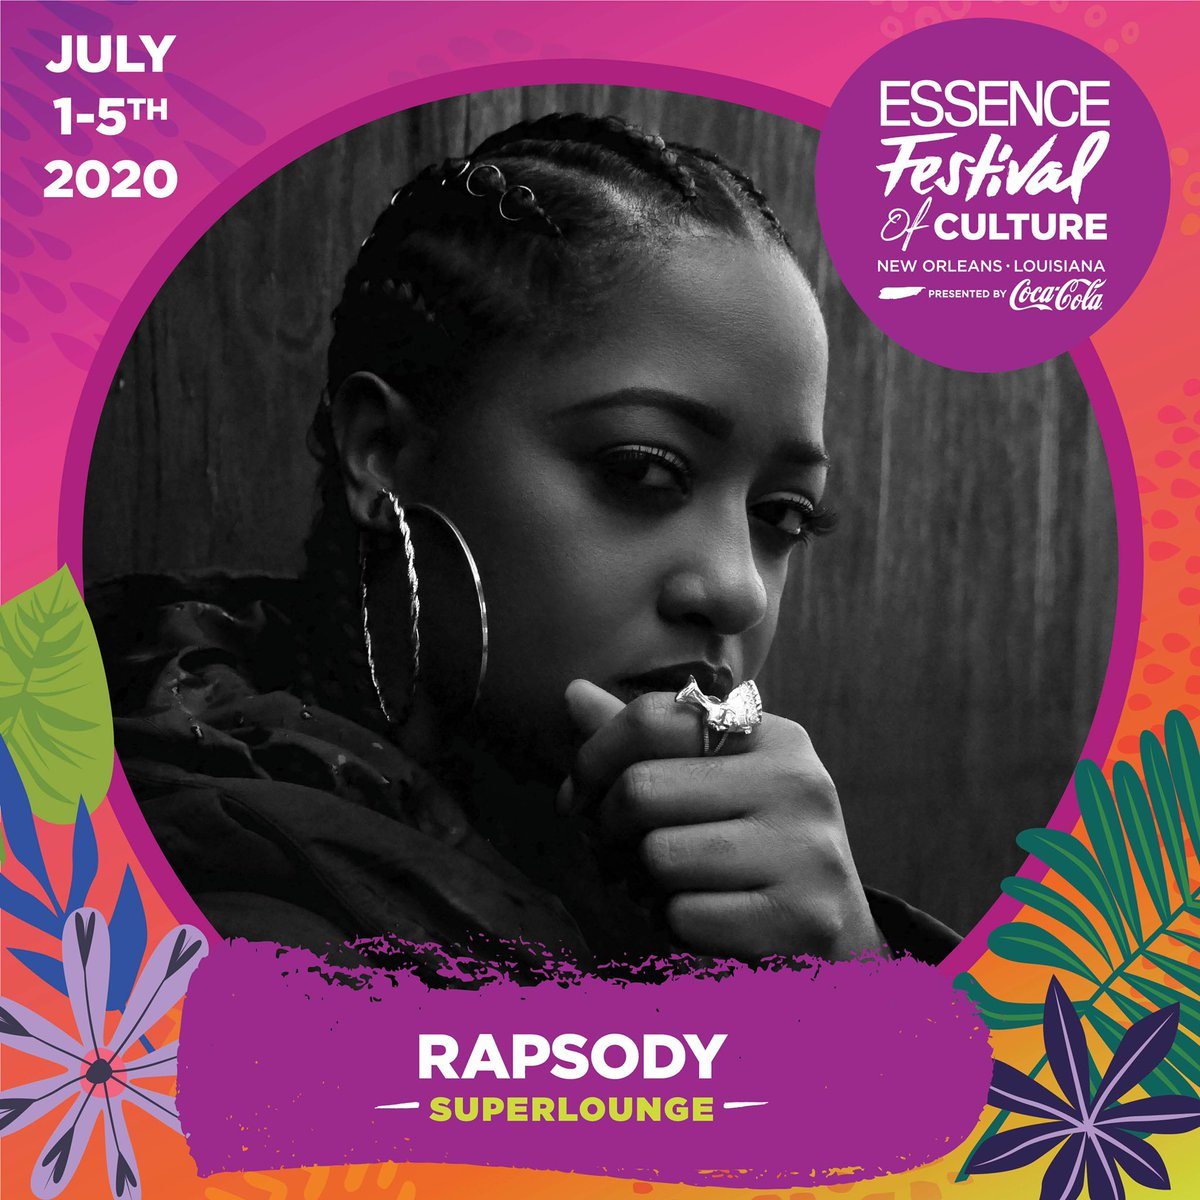 RT @rapsody: See y'all at @essencefest 😉 https://t.co/vQwHzf40Eg